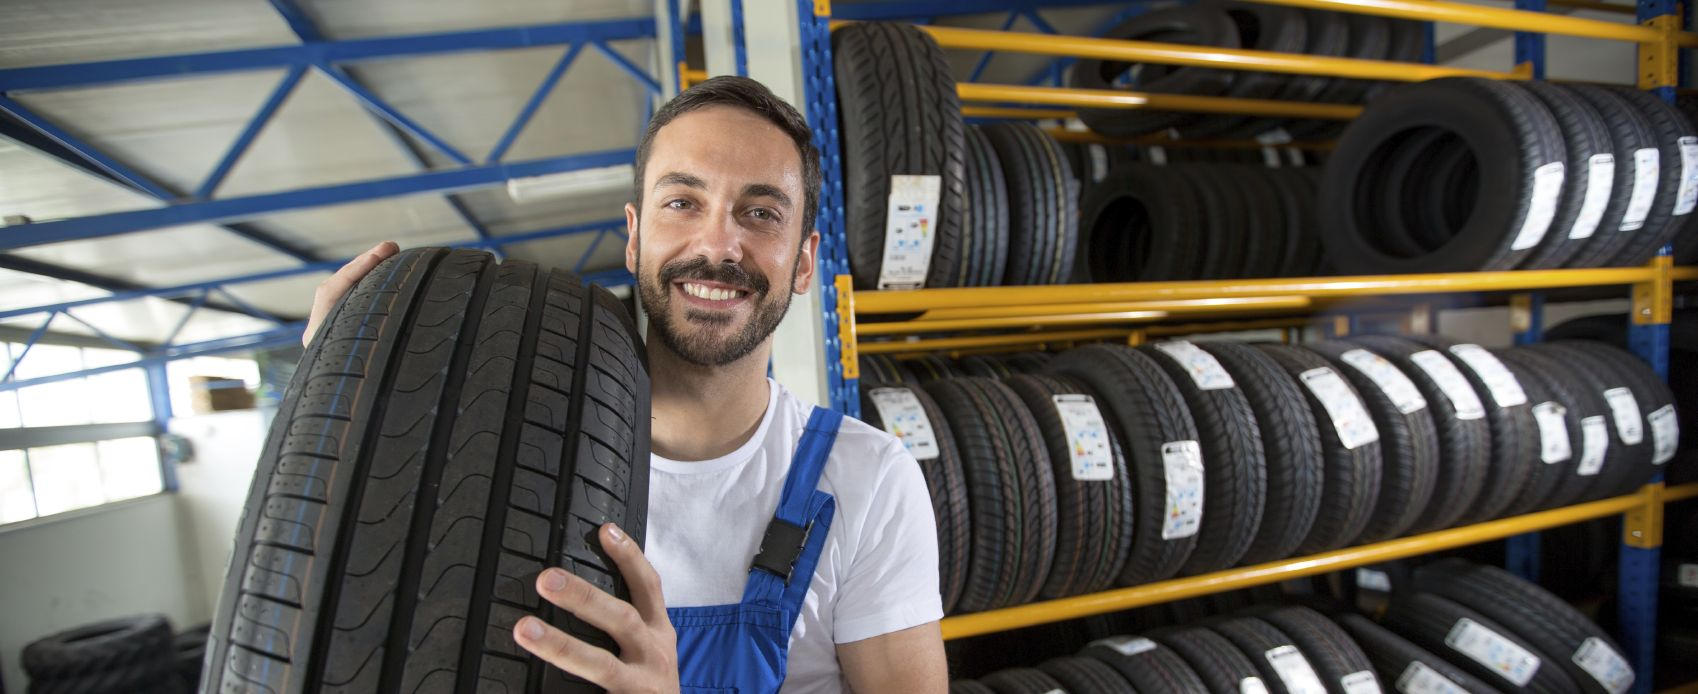 Get Your Tires Changed at Sweeney Chevrolet!